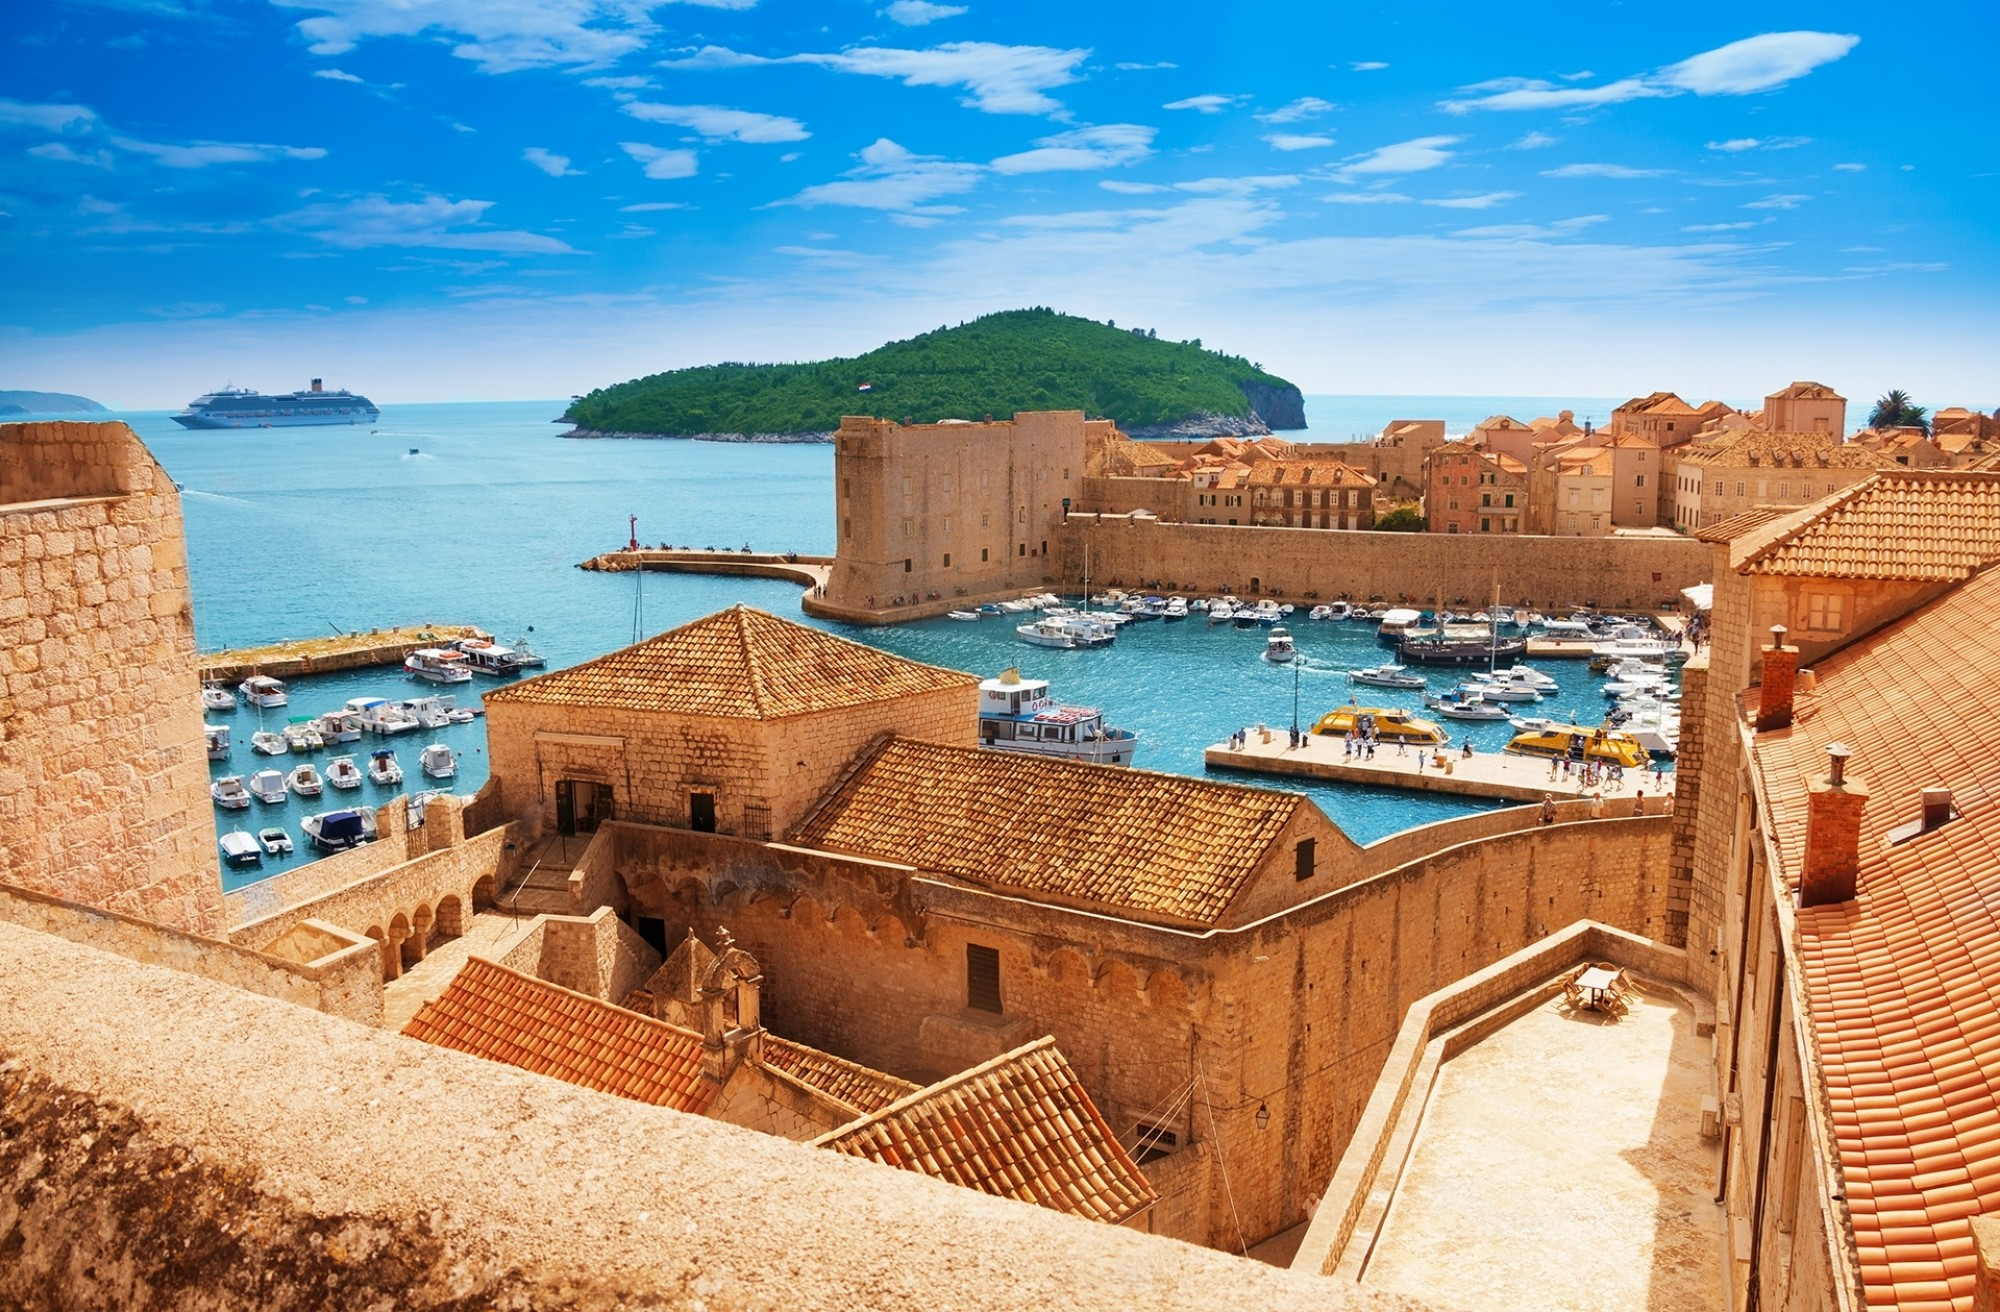 Port-of-Dubrovnik-from-the-old-city-walls